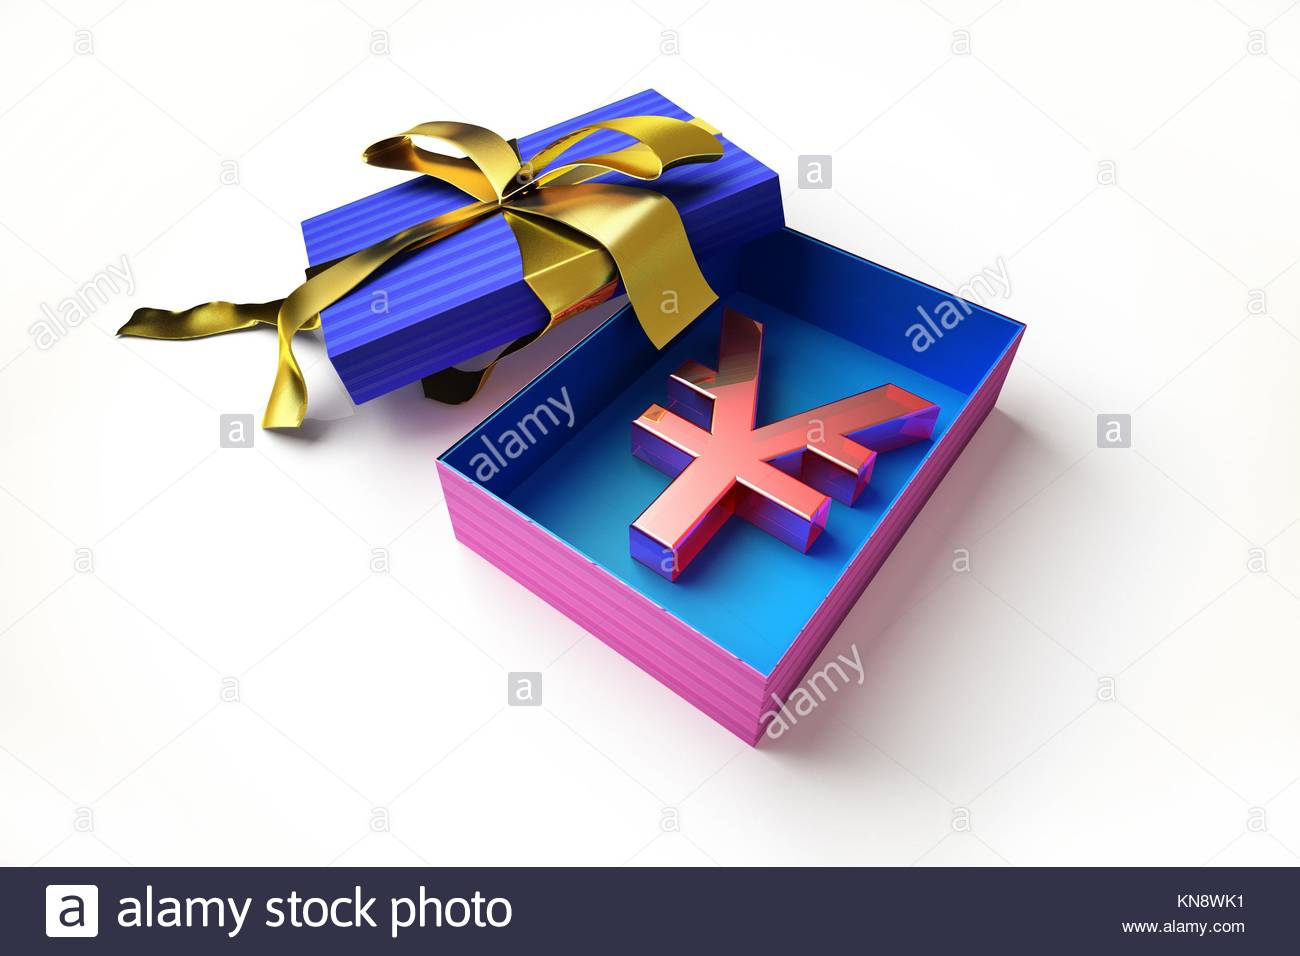 Opened gift box with golden ribbon, with the yen symbol inside, on white surface. - Stock Image